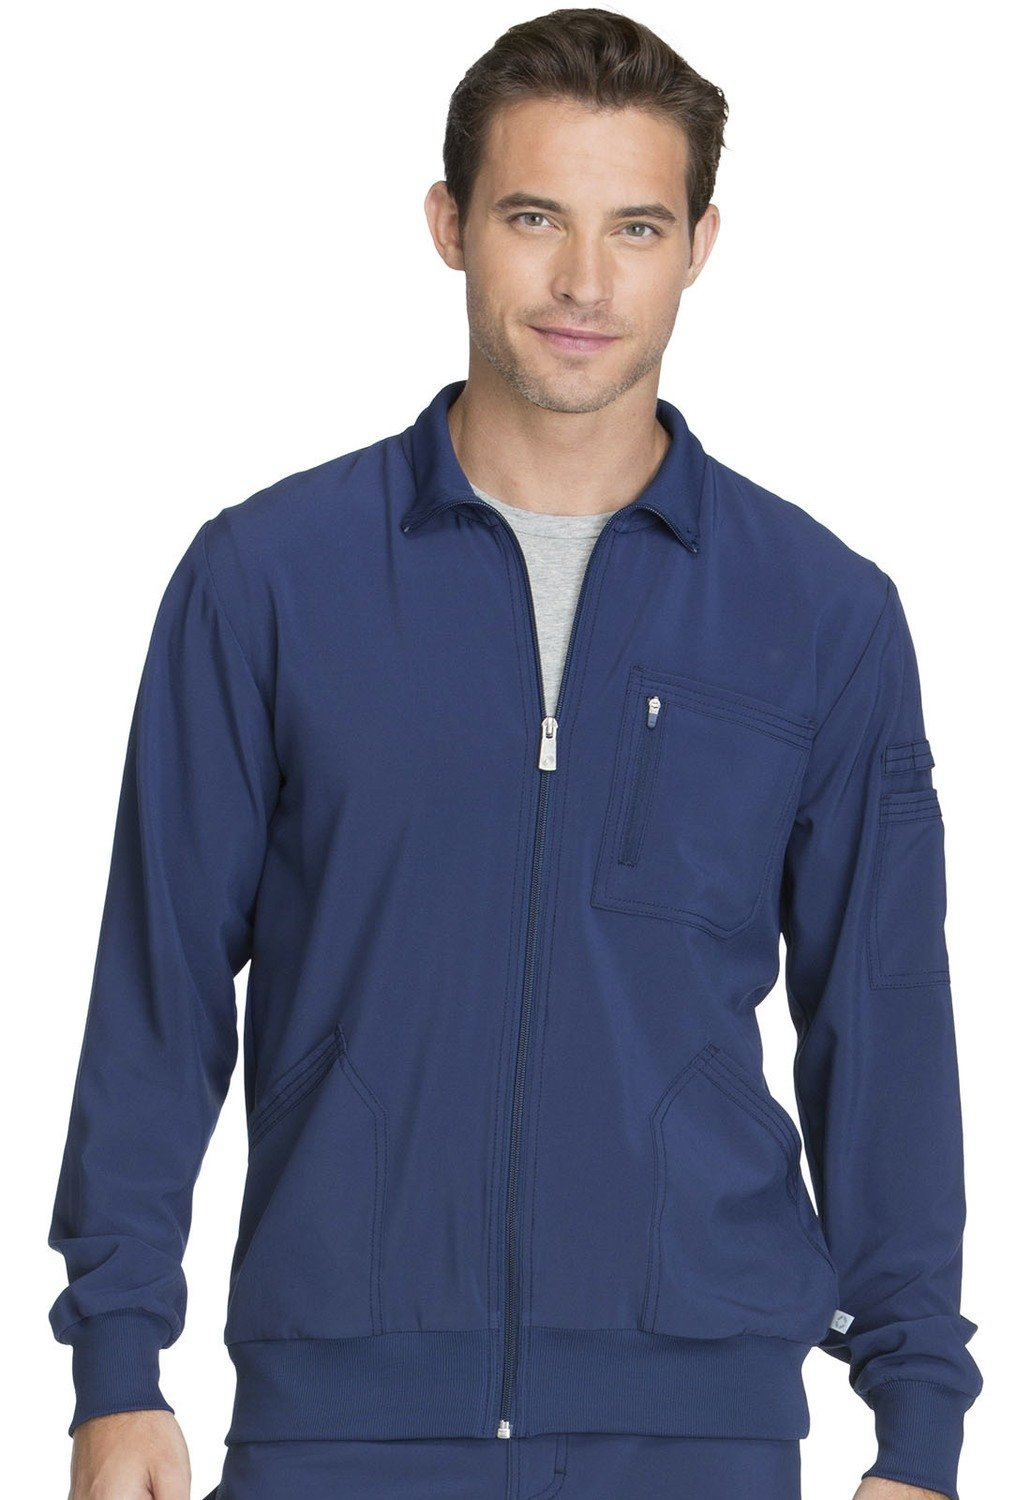 Giacca CHEROKEE INFINITY CK305A Colore Navy